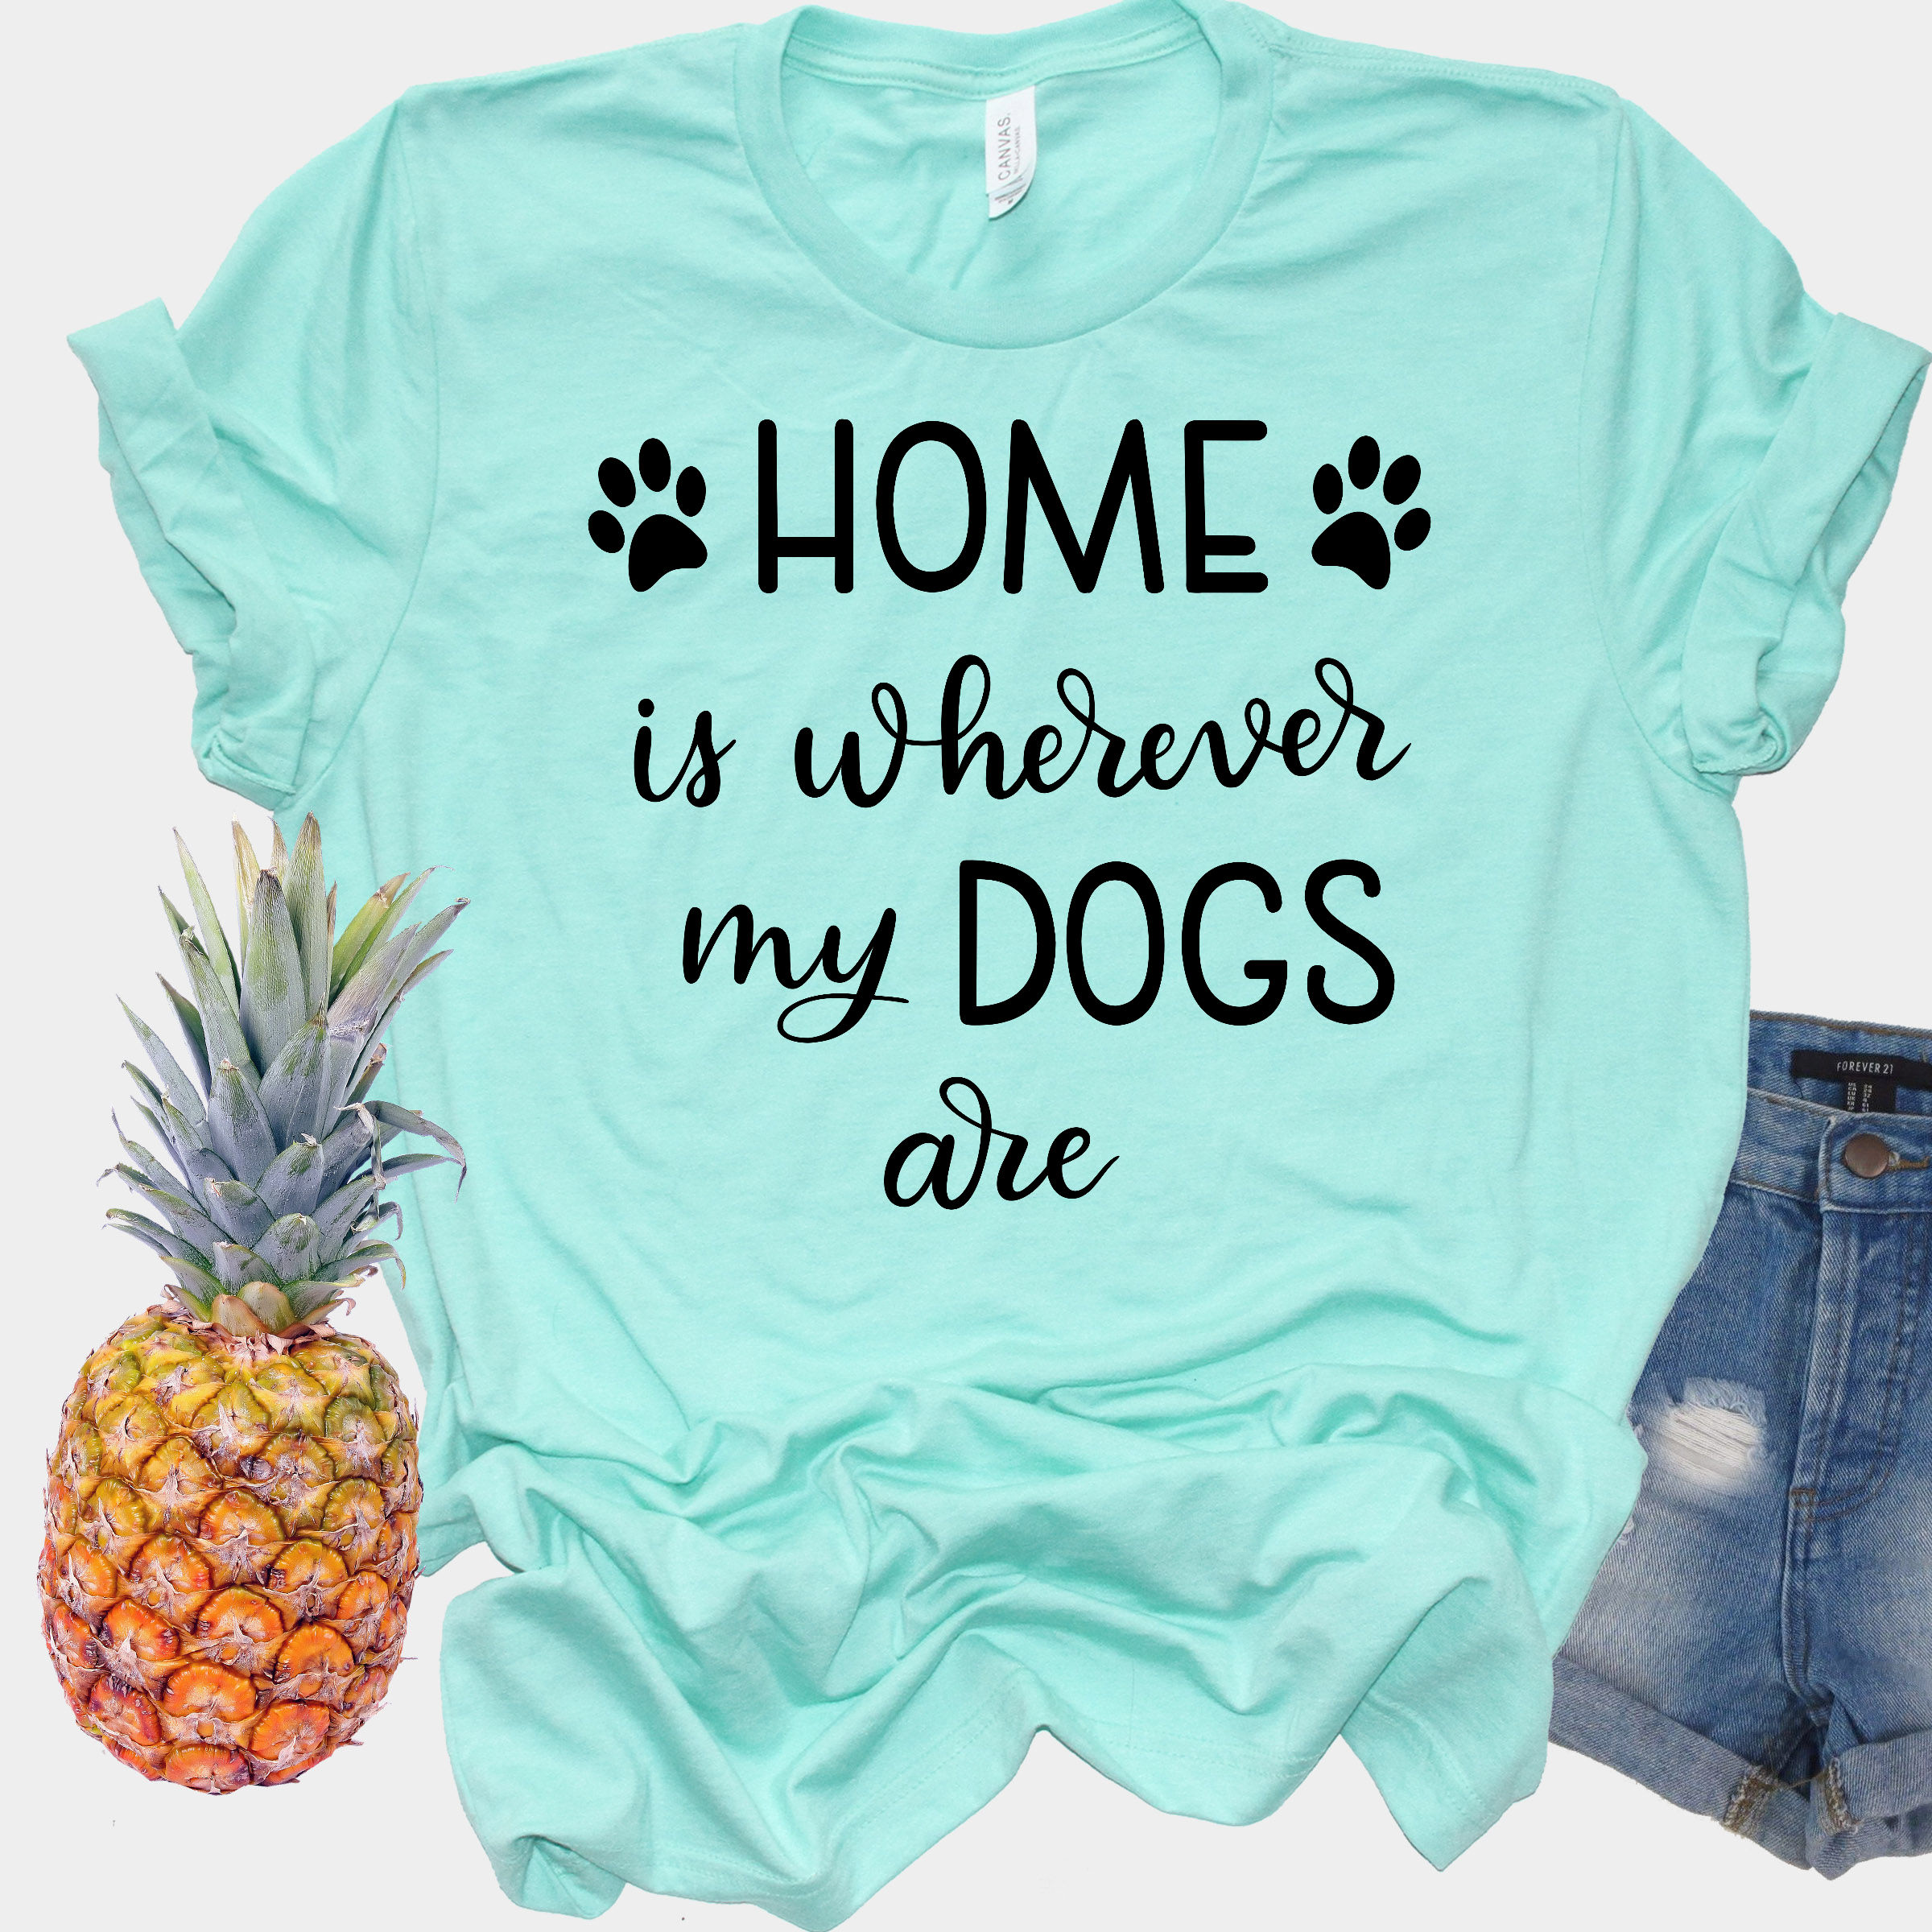 Dog SVG - Home is wherever my dogs are, Handlettered example image 2